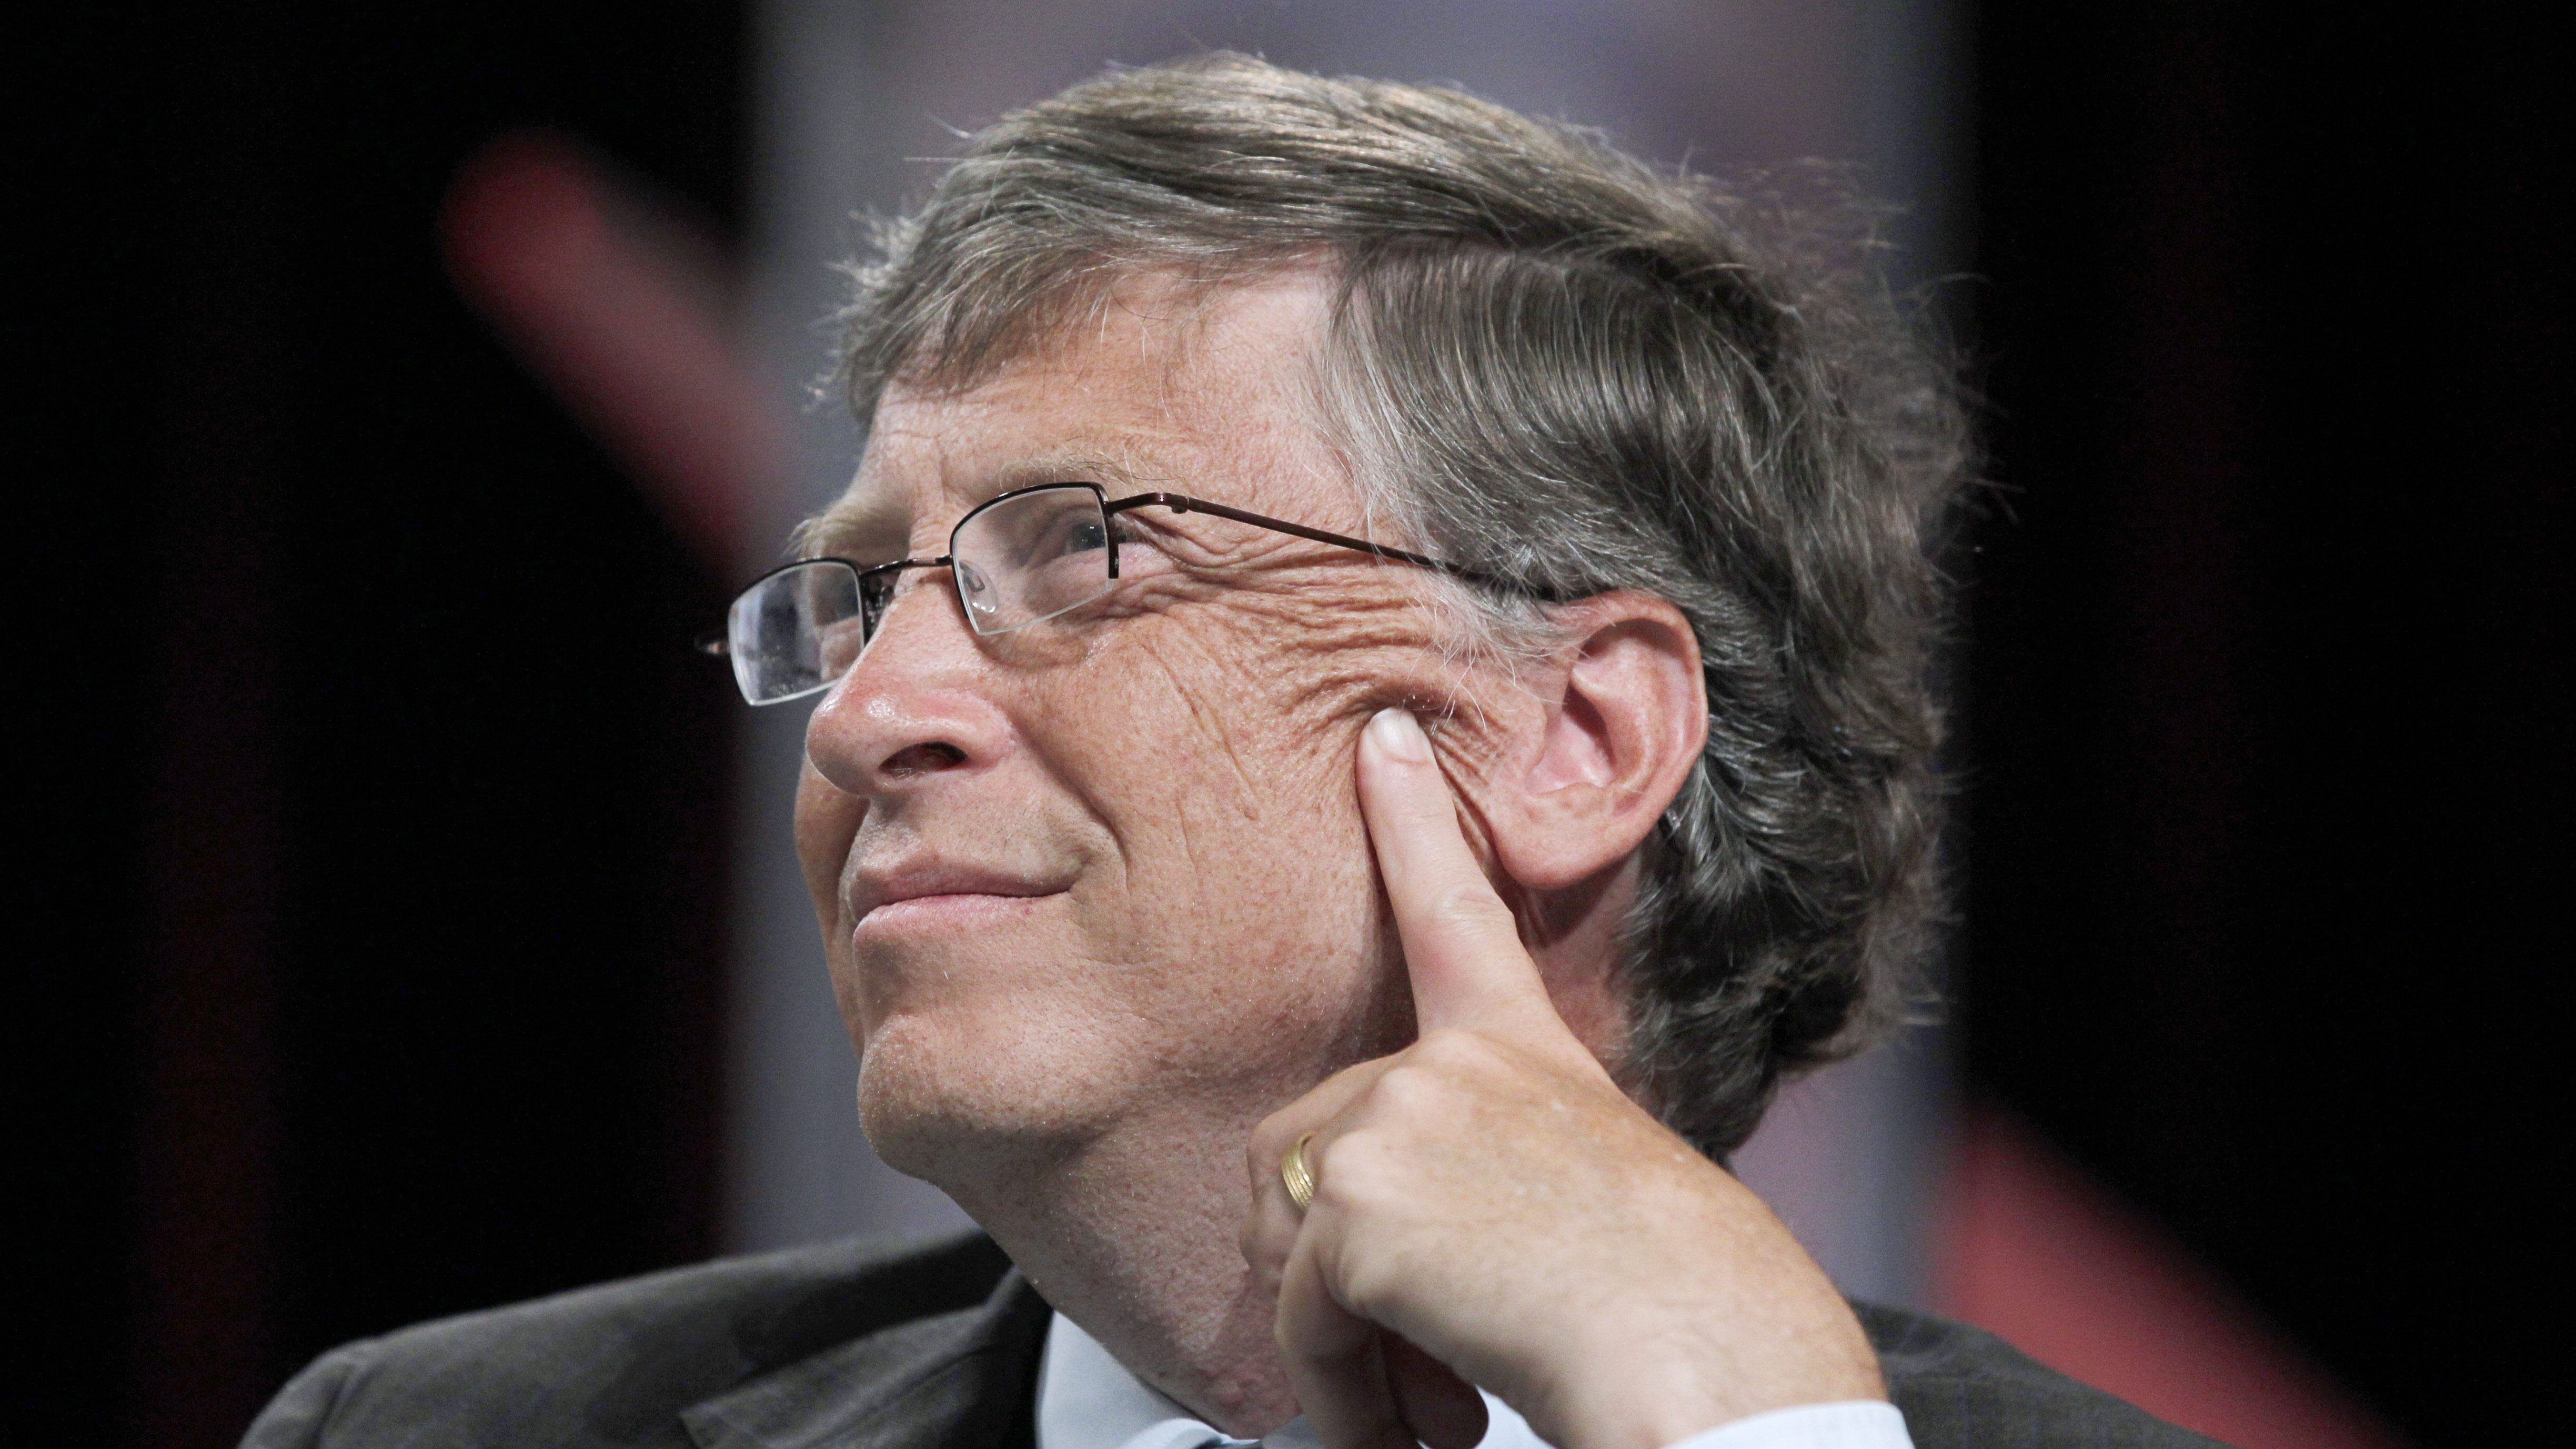 Microsoft founder Bill Gates speaks during a forum on education at the National Urban League annual conference in Boston, Thursday, July 28, 2011. (AP Photo/Steven Senne)